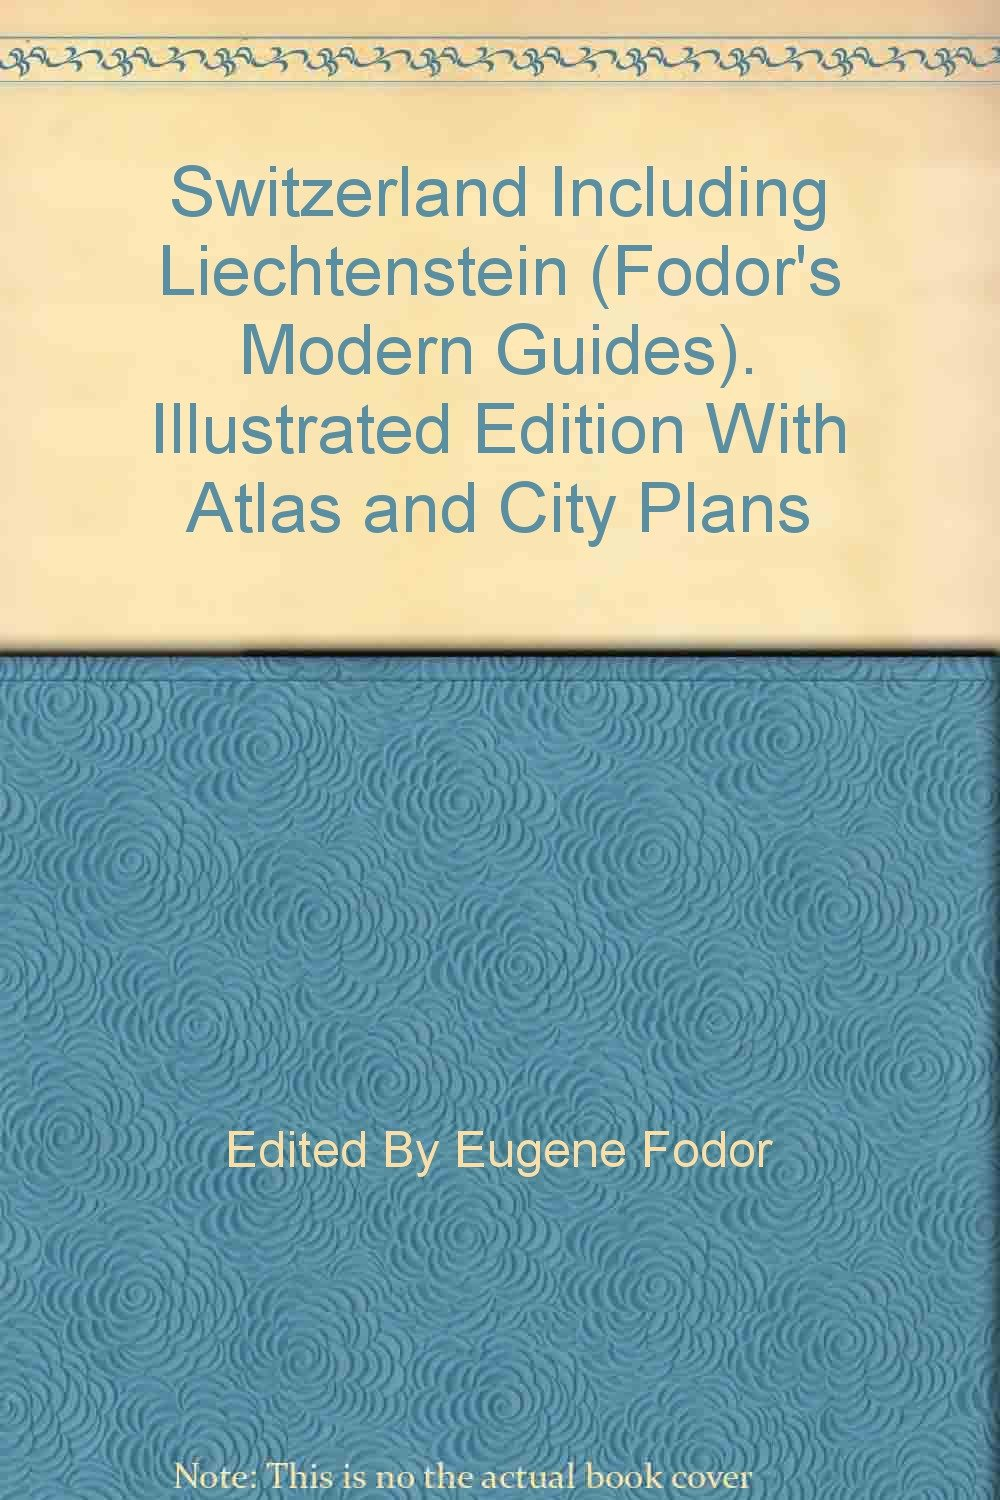 Switzerland Including Liechtenstein (Fodors Modern Guides). Illustrated Edition With Atlas and City Plans Hardcover – 1963 Edited By Eugene Fodor MacGibbon & Kee B001E59Z24